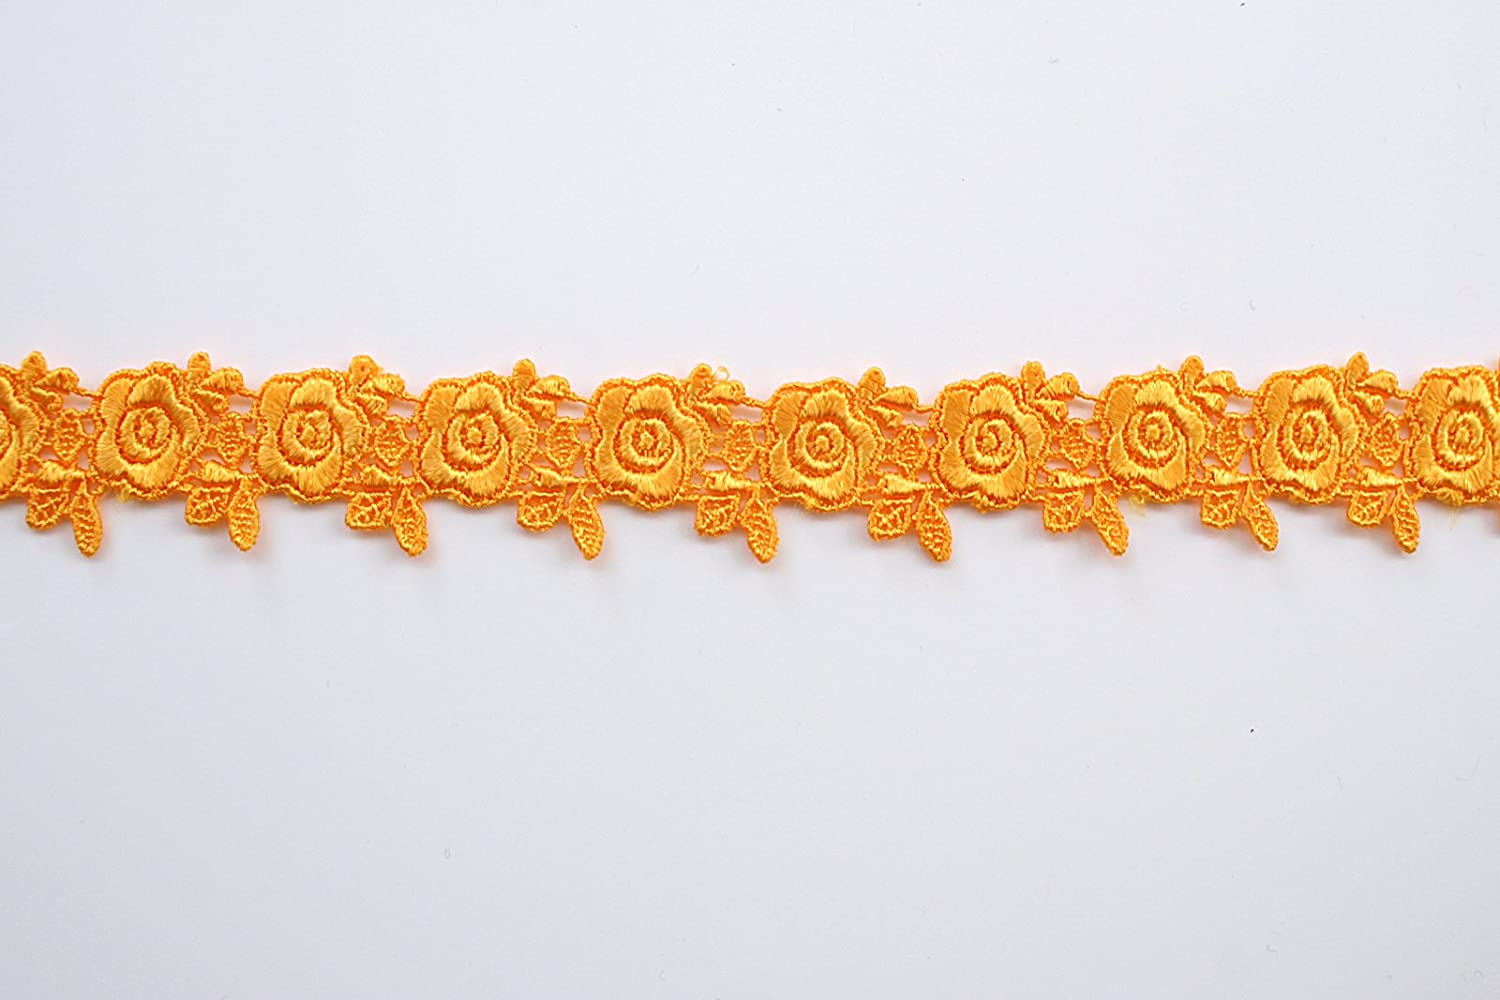 Altotux 1 19 Colors of Embroidered Floral Venice Lace Trim Guipure Trimming By Yard Orange